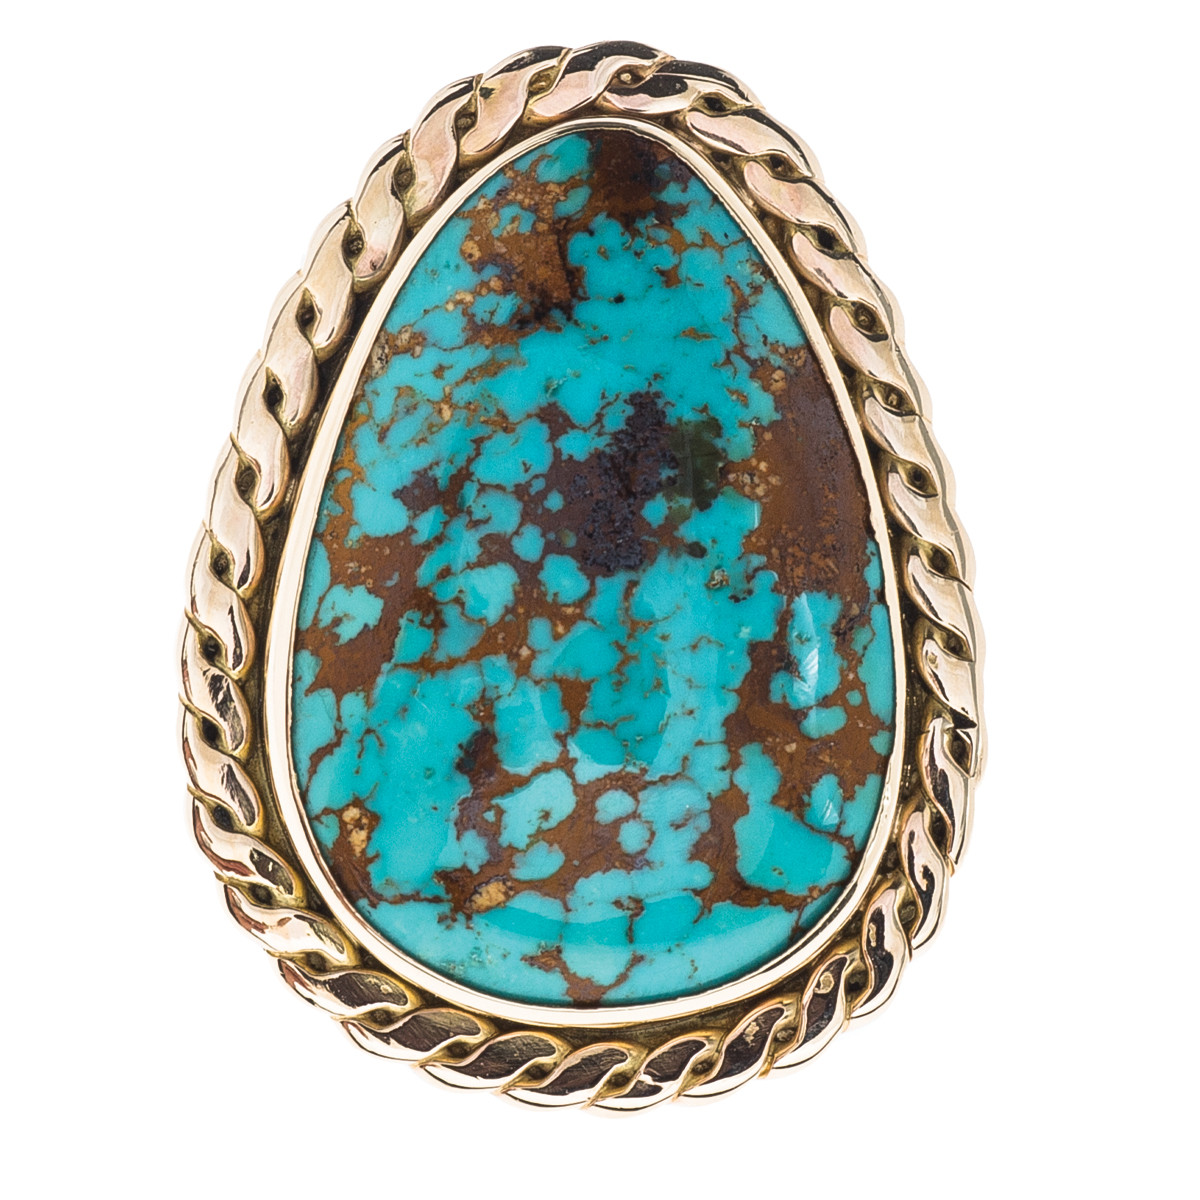 Vintage Turquoise Ring with Rope Detail